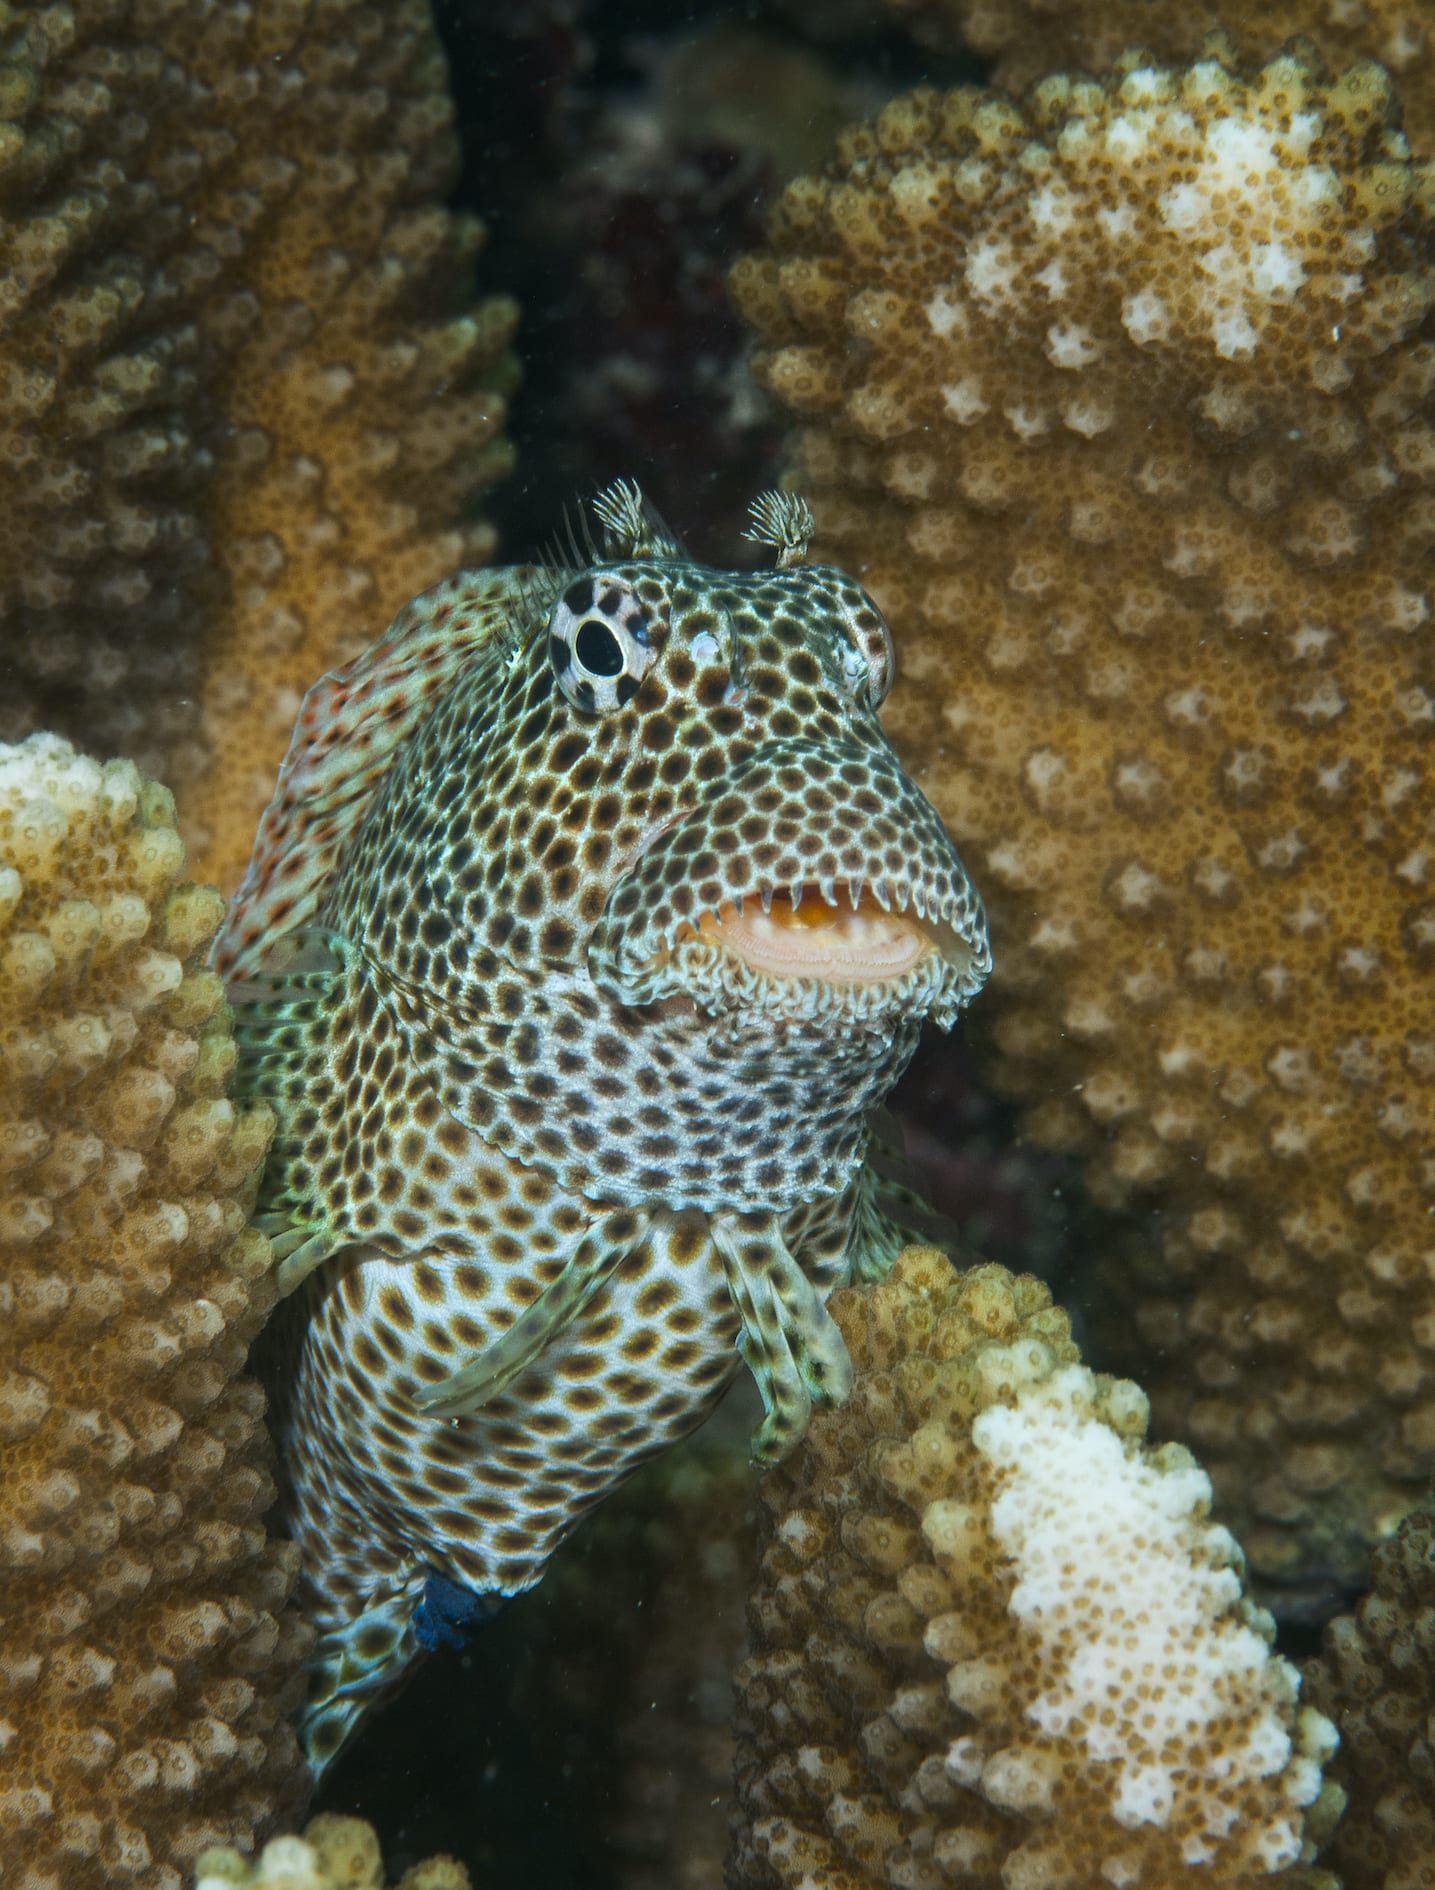 The leopard blenny (Exallias brevis) is a goofy giant among blennies, growing up to 14 cm long. This species is unique in its diet, feeding exclusively on coral, leaving behind bleached patches as evidence.